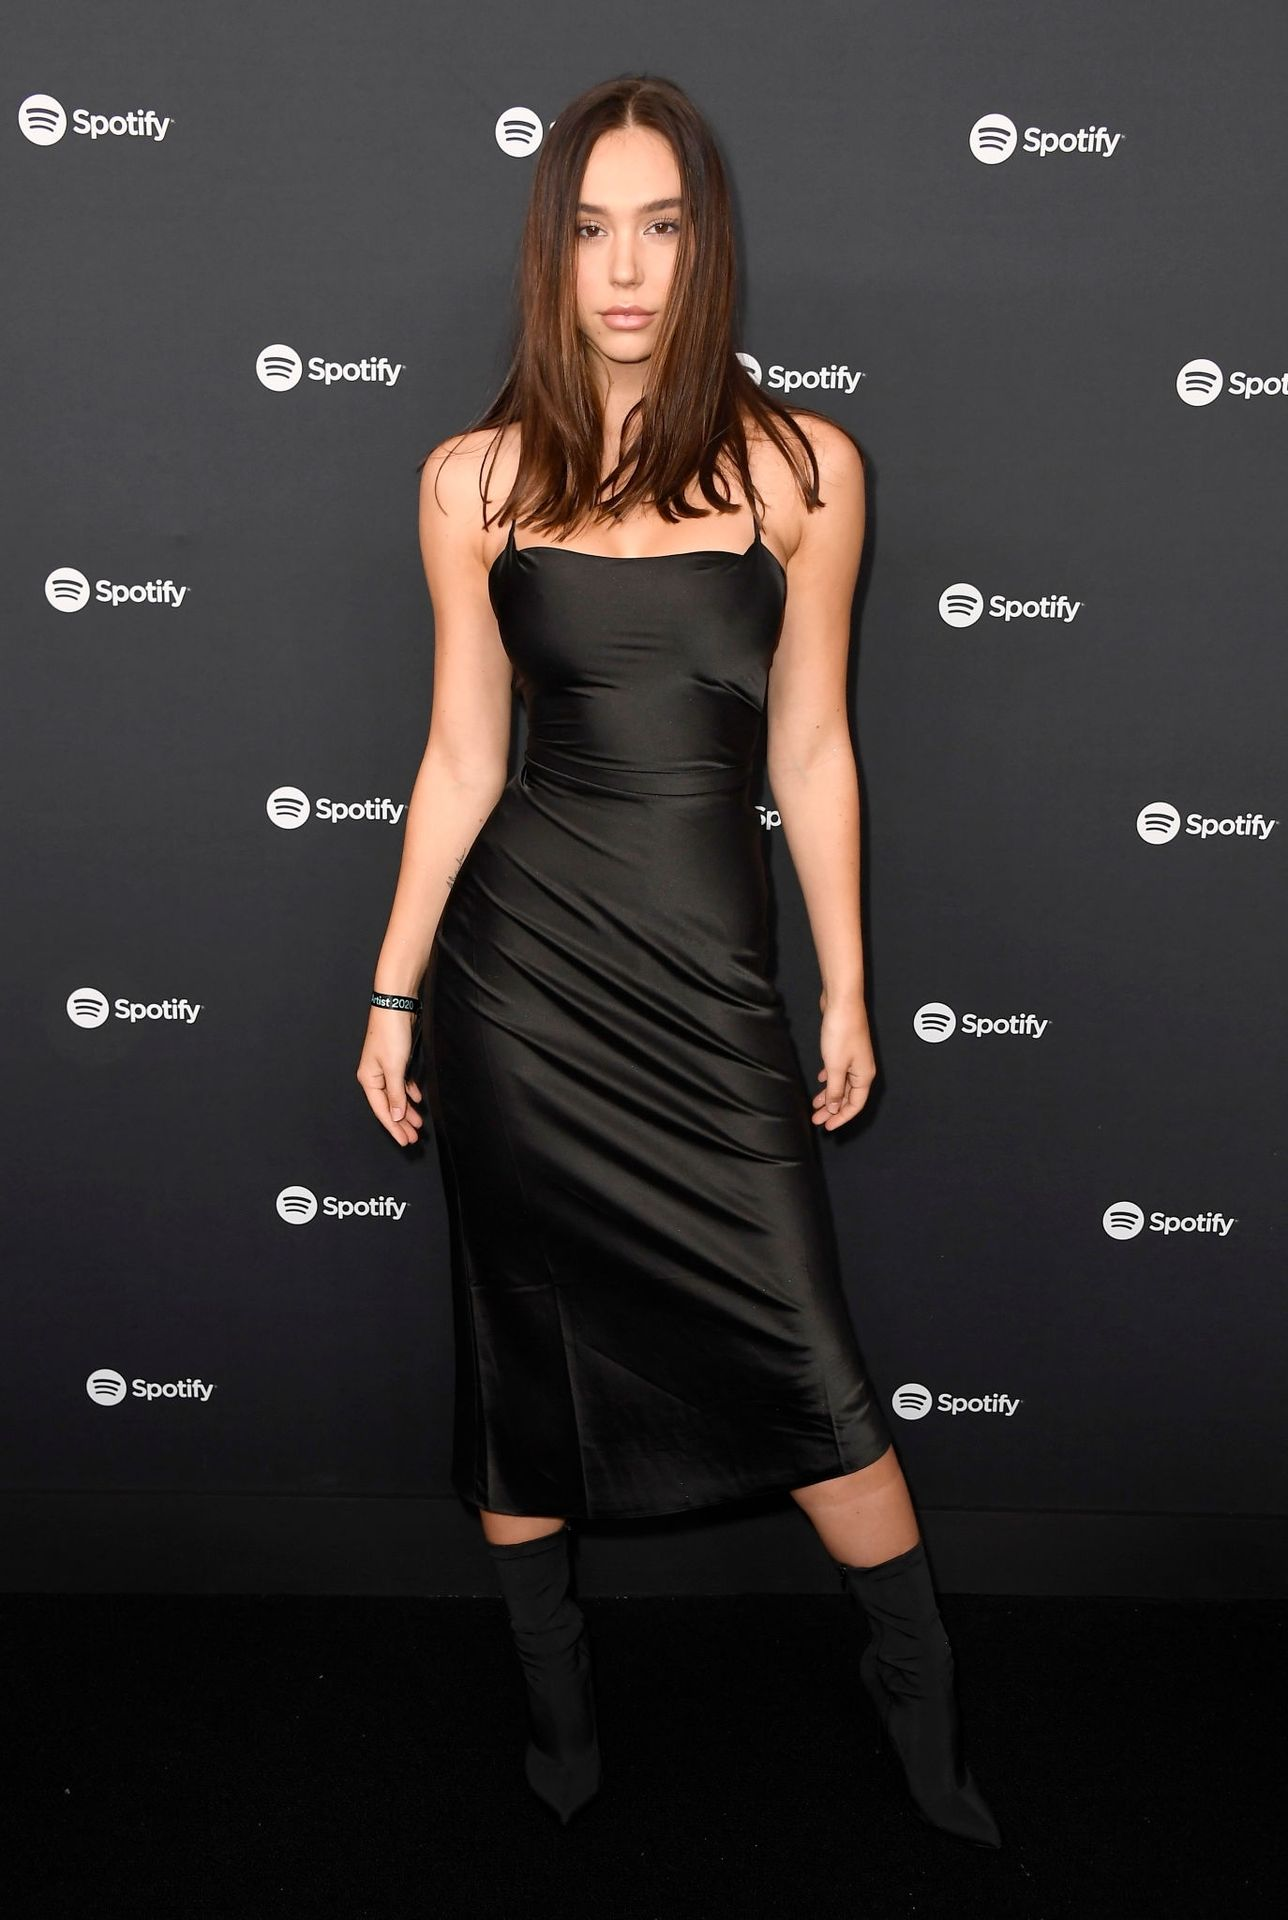 Alexis Ren Shows Off Her Tits At The Spotify Best New Artist Party 0009